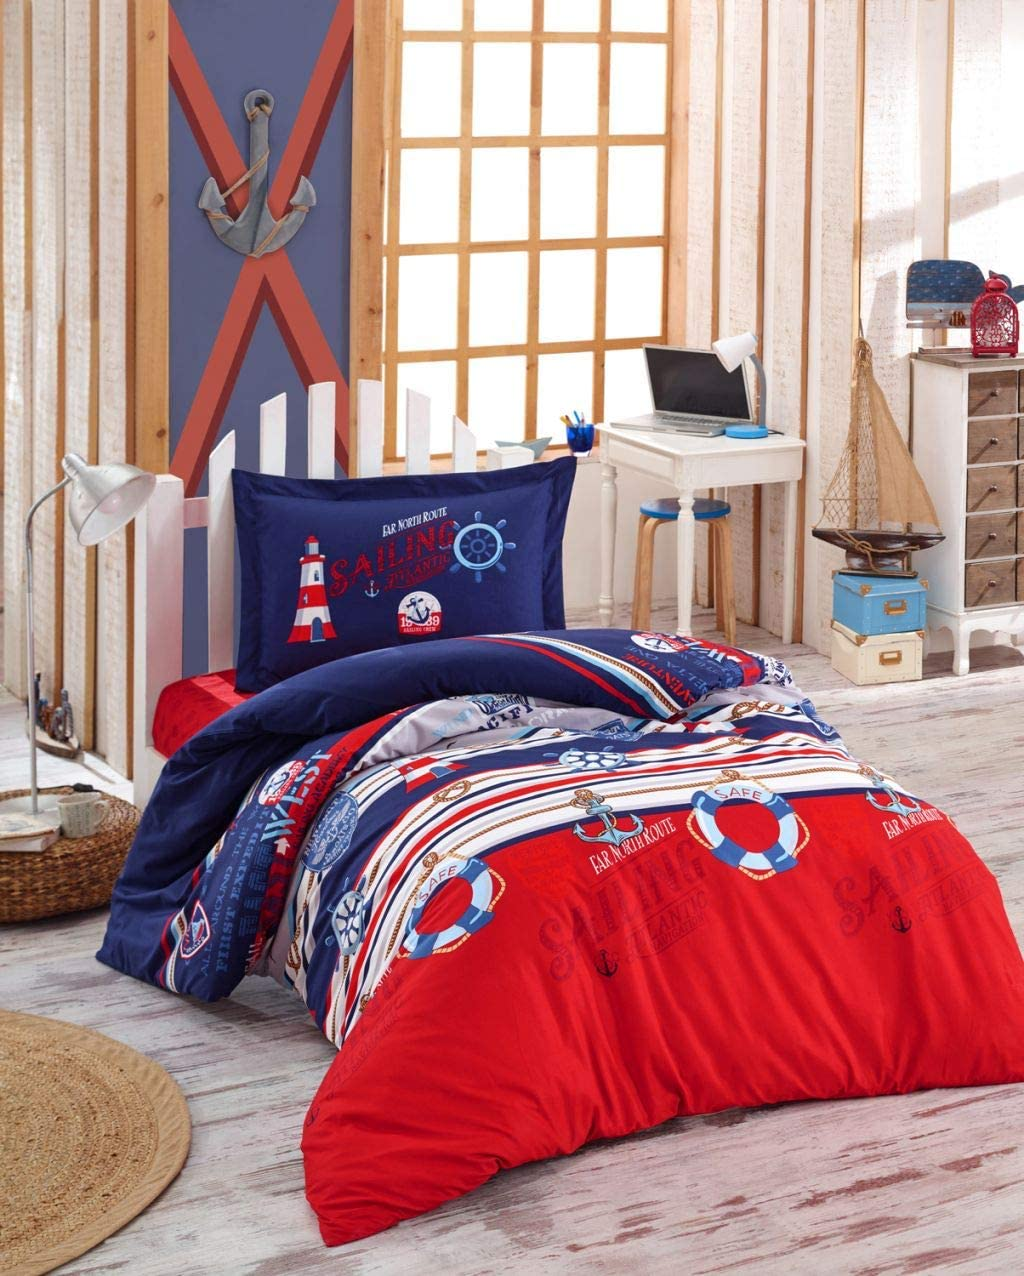 Amazon Com Paradise Ranforce 100 Cotton Nautical Bedding Set Lighthouse Themed Twin Size Quilt Duvet Cover Set Navy Blue Red Reversible Comforter Included 4 Pieces Home Kitchen